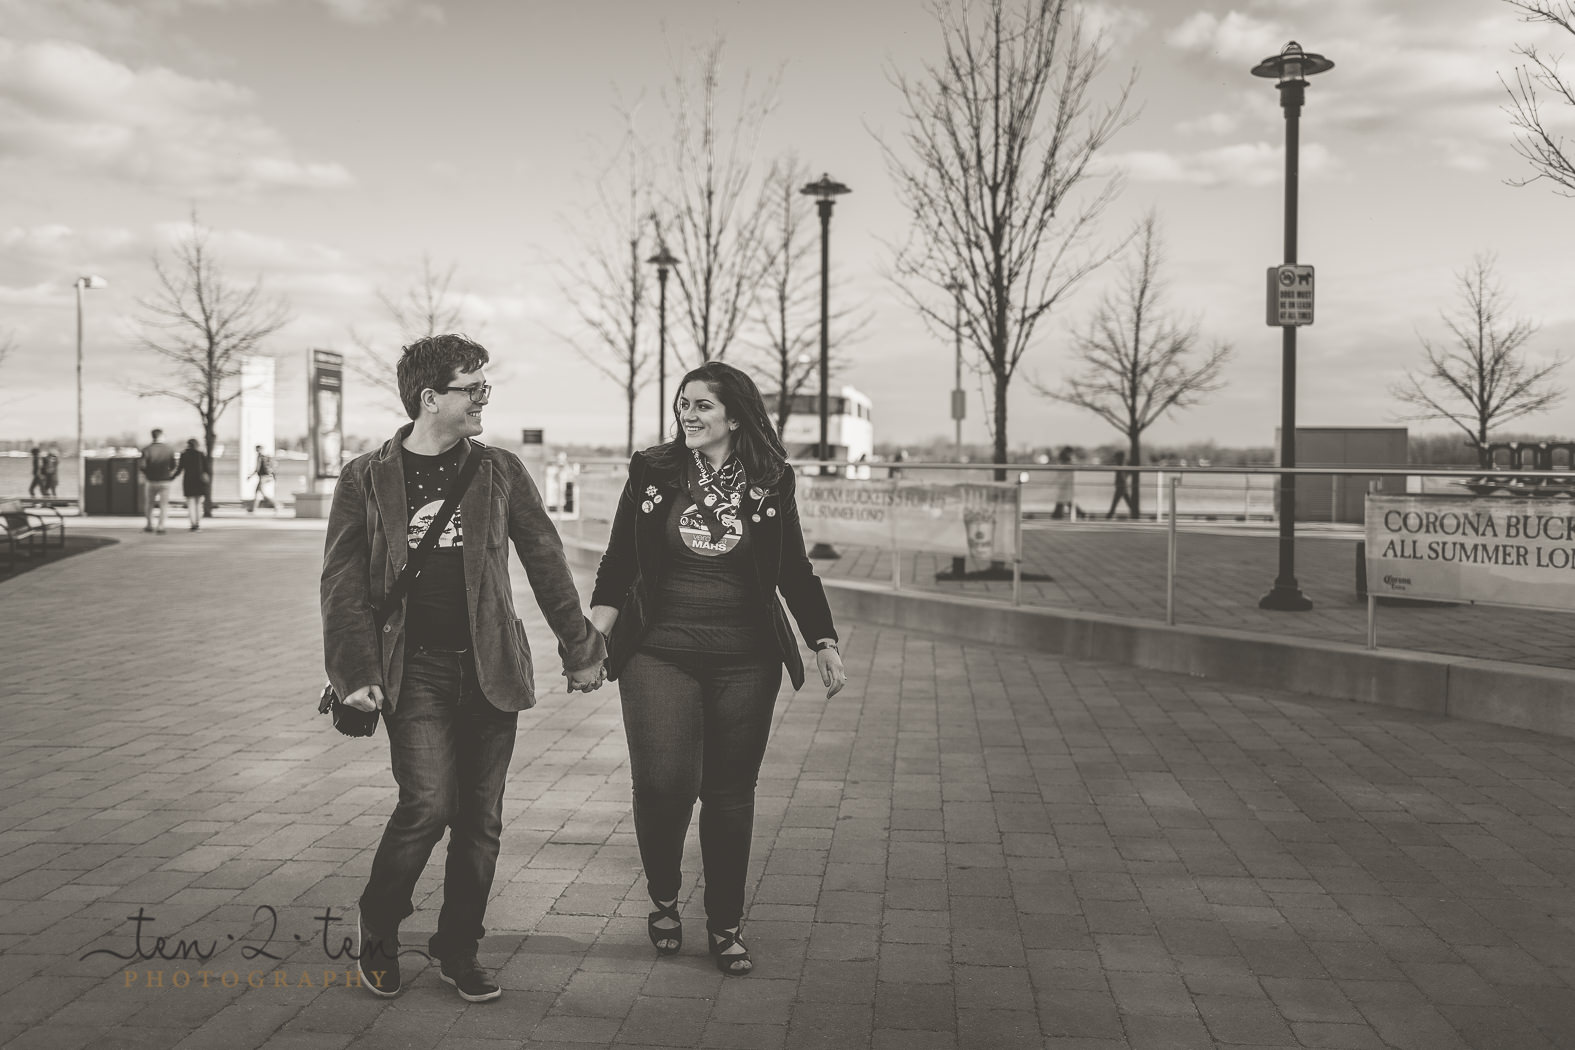 toronto harbourfront engagement photos, harbourfront engagement photos, harbourfront engagement shoot, toronto lakeshore engagement photos, toronto engagement photos